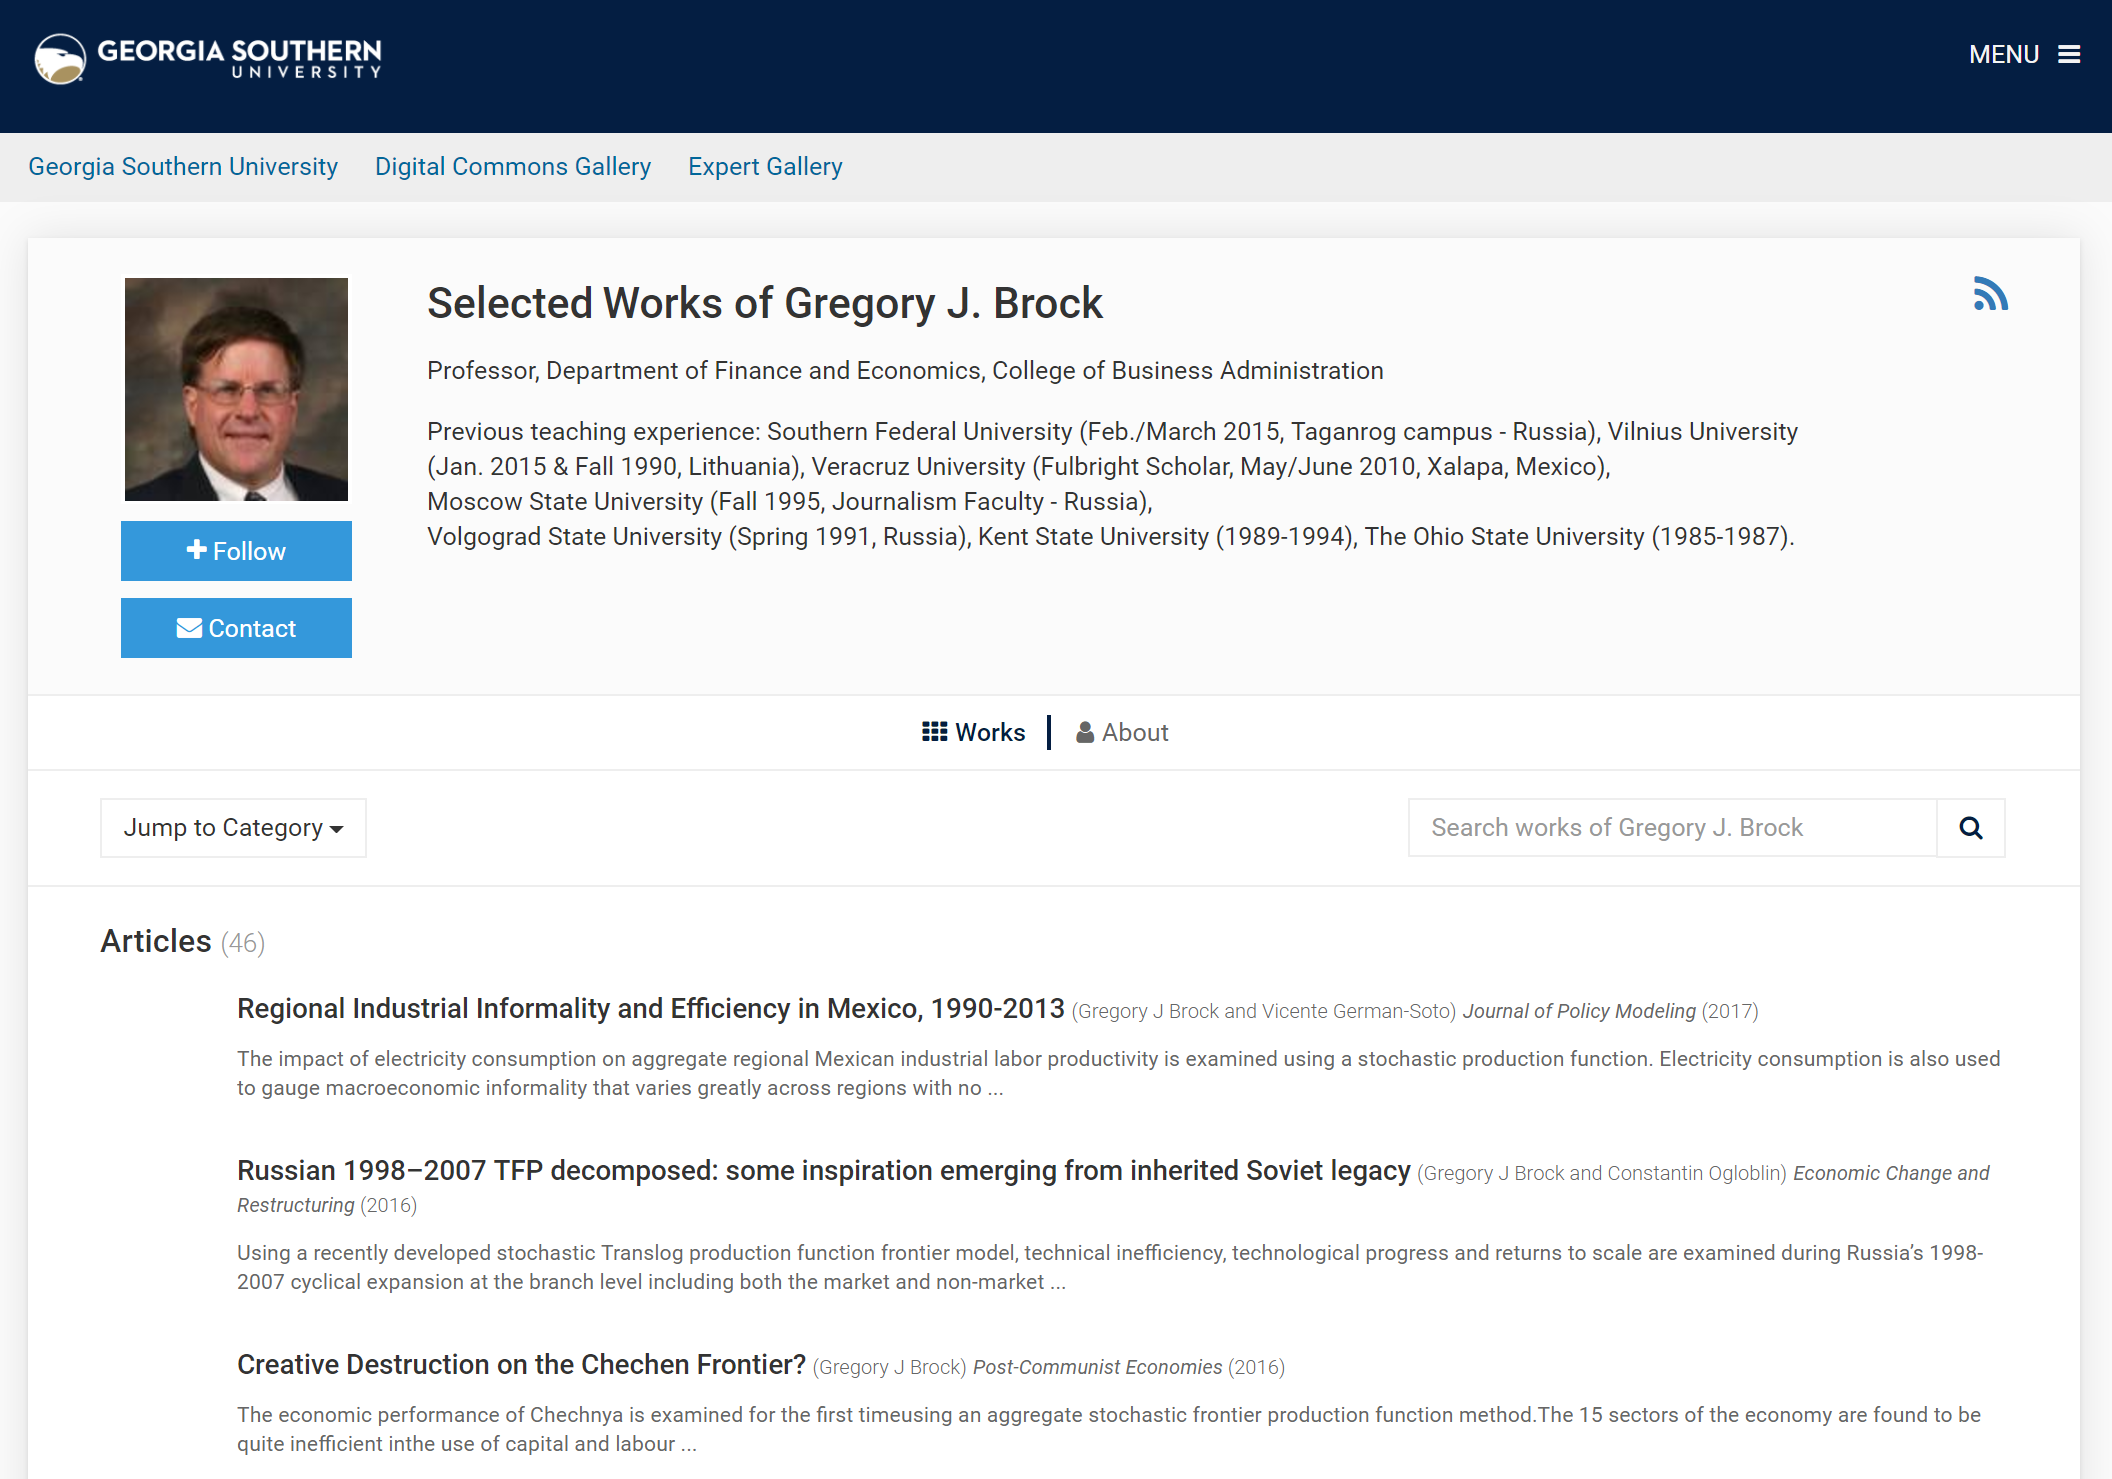 SelectedWorks Profile